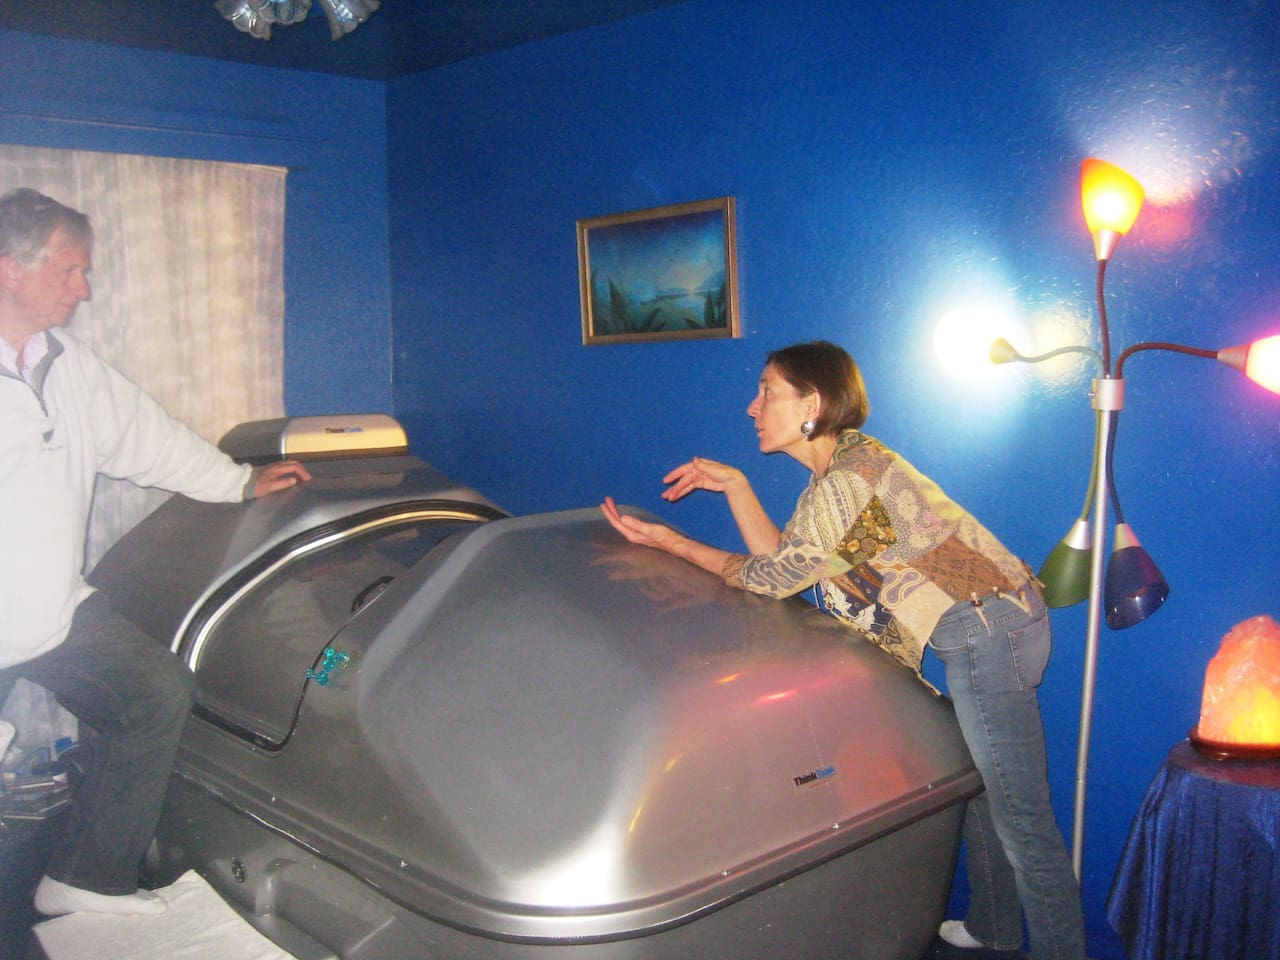 Shanti is demonstrating the Sensory Deprivation Tank for Flotation into Inner Space ... the final frontier